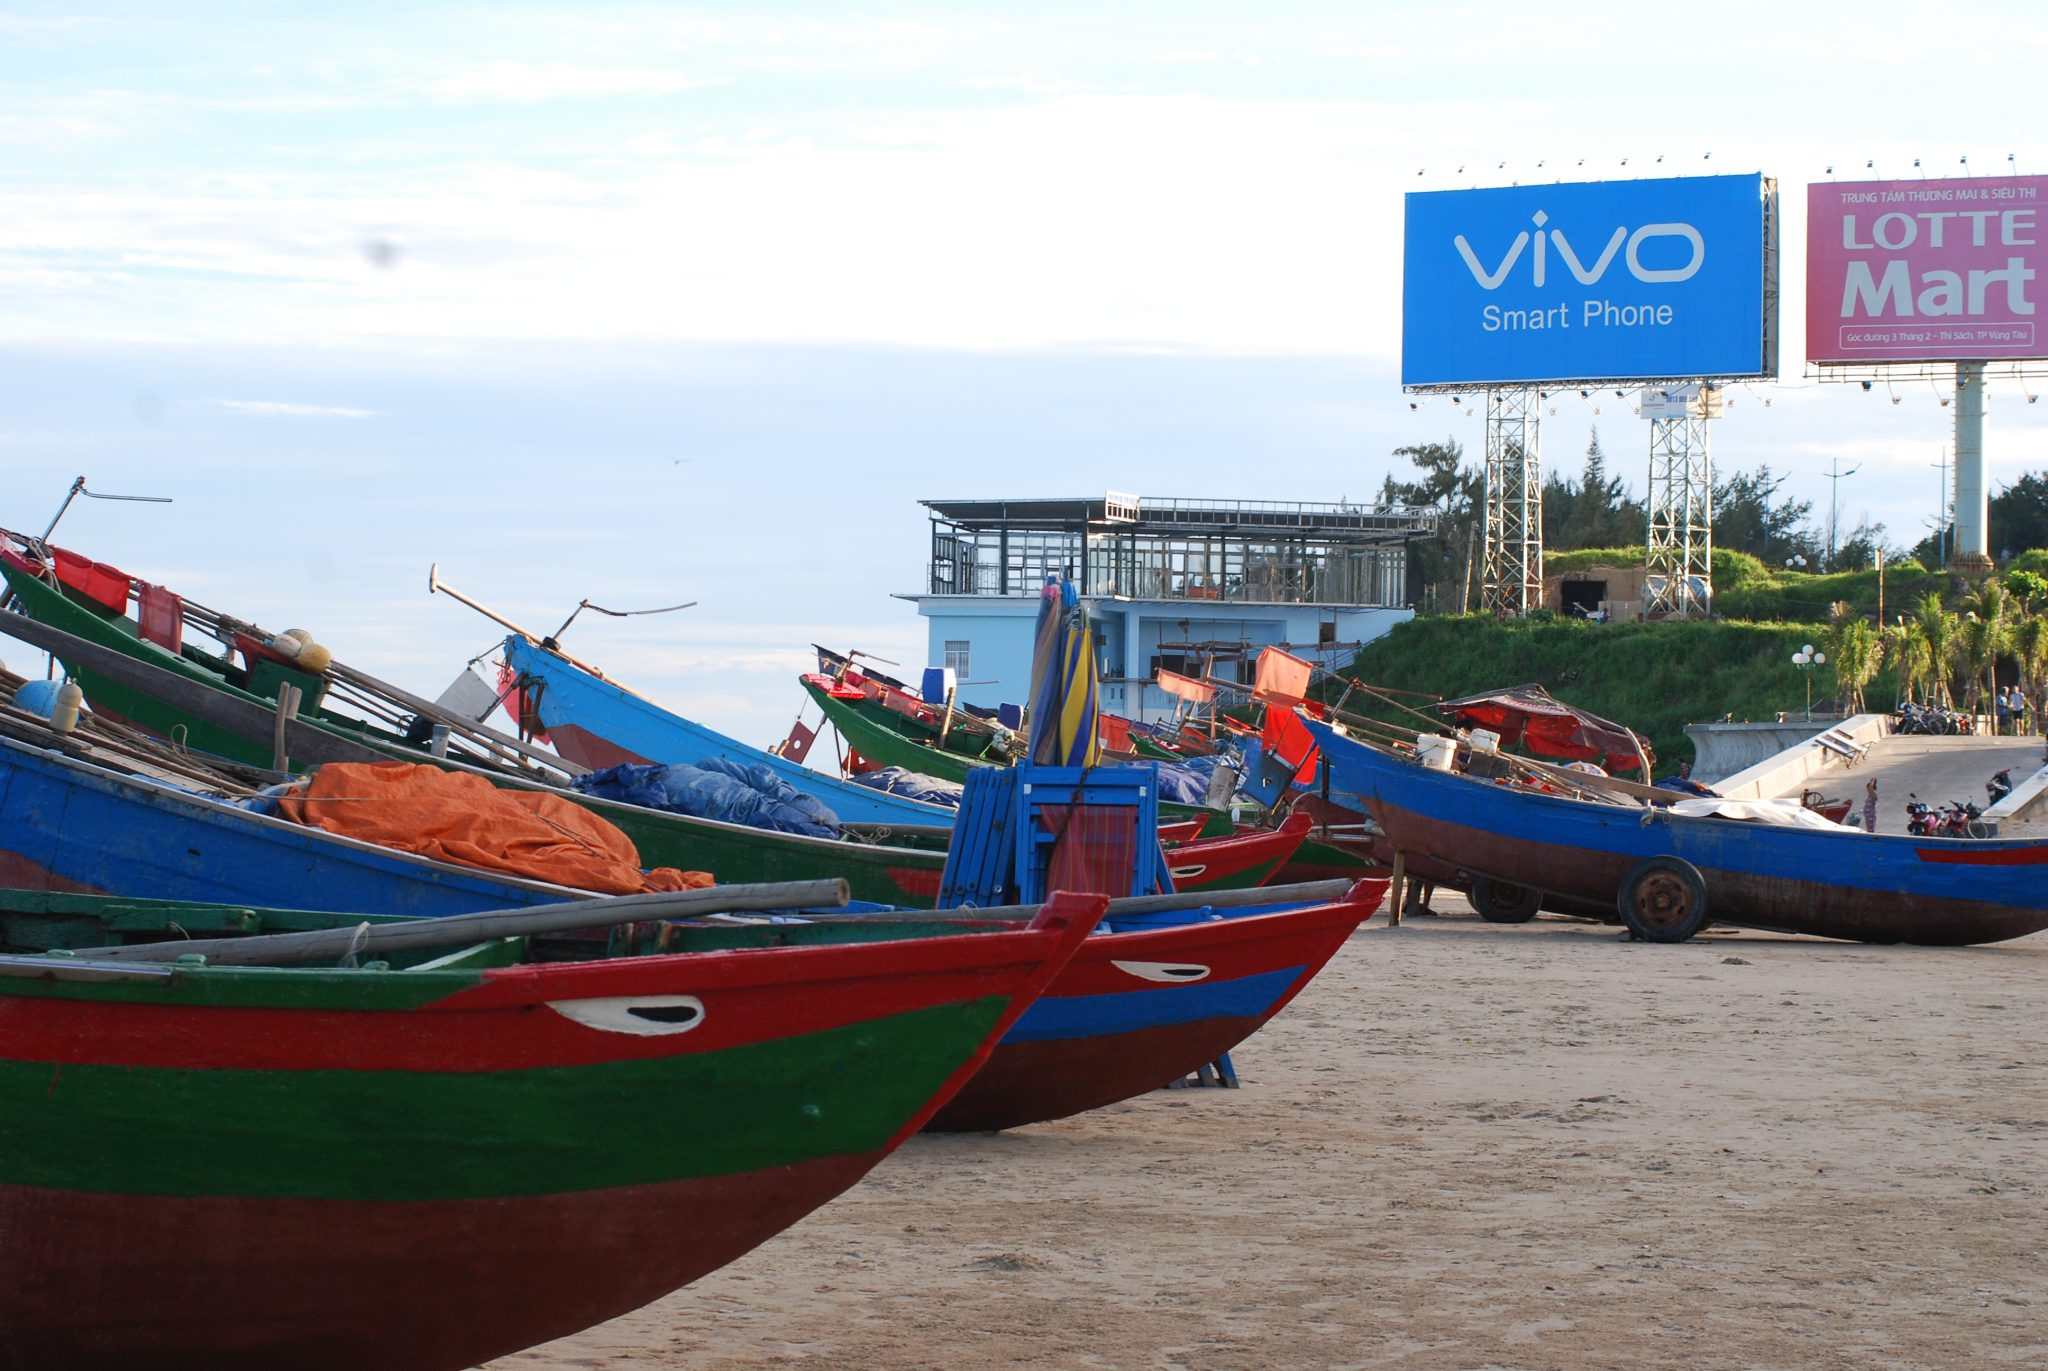 ietnam Summer Trips: A day in Vung Tau - Vung Tau Travelling Guide by Hoozing